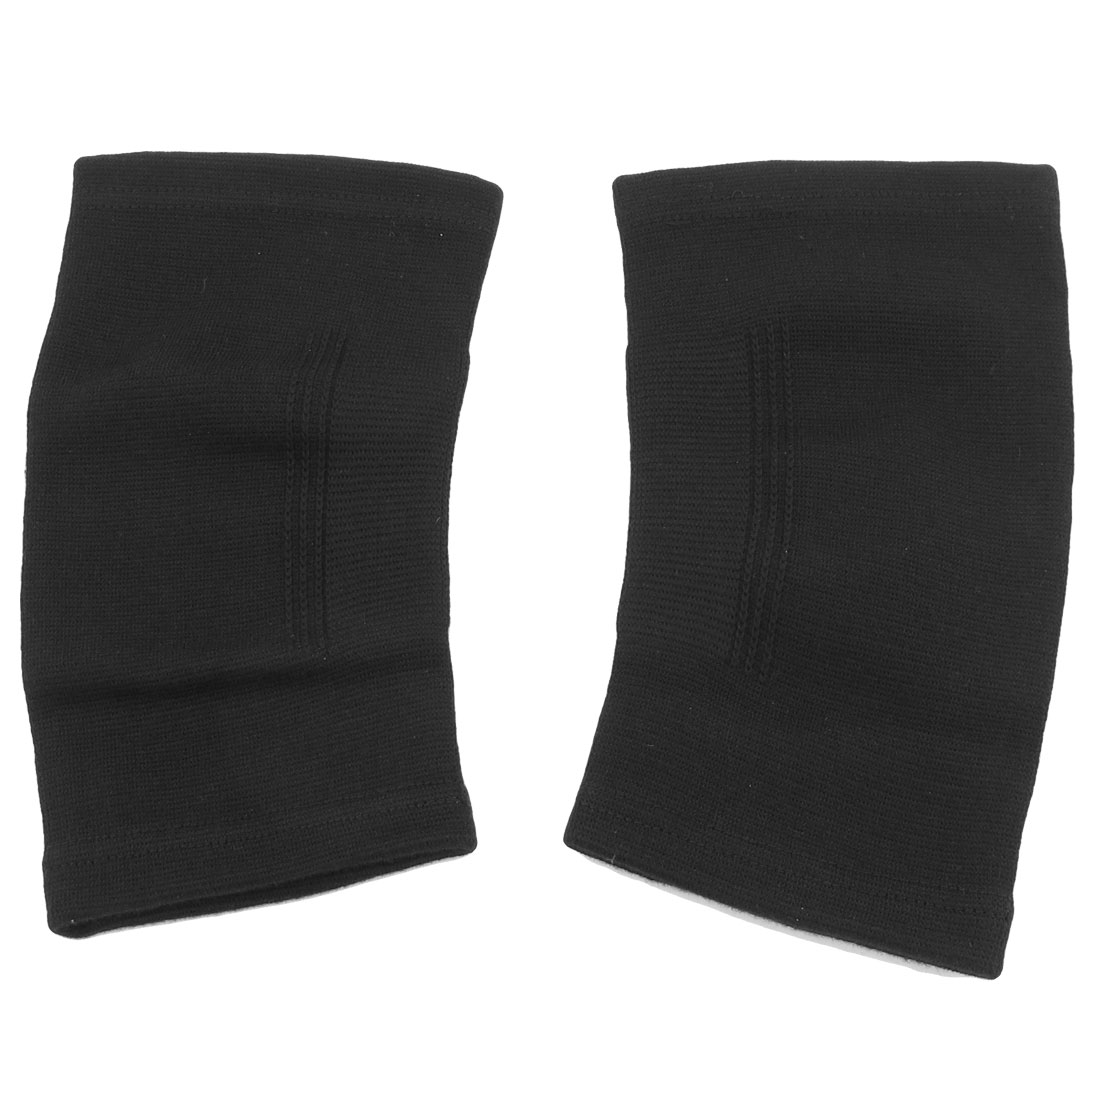 Sports Knitted Stretchy Pullover Knee Support Protector Brace Wrap Black Pair